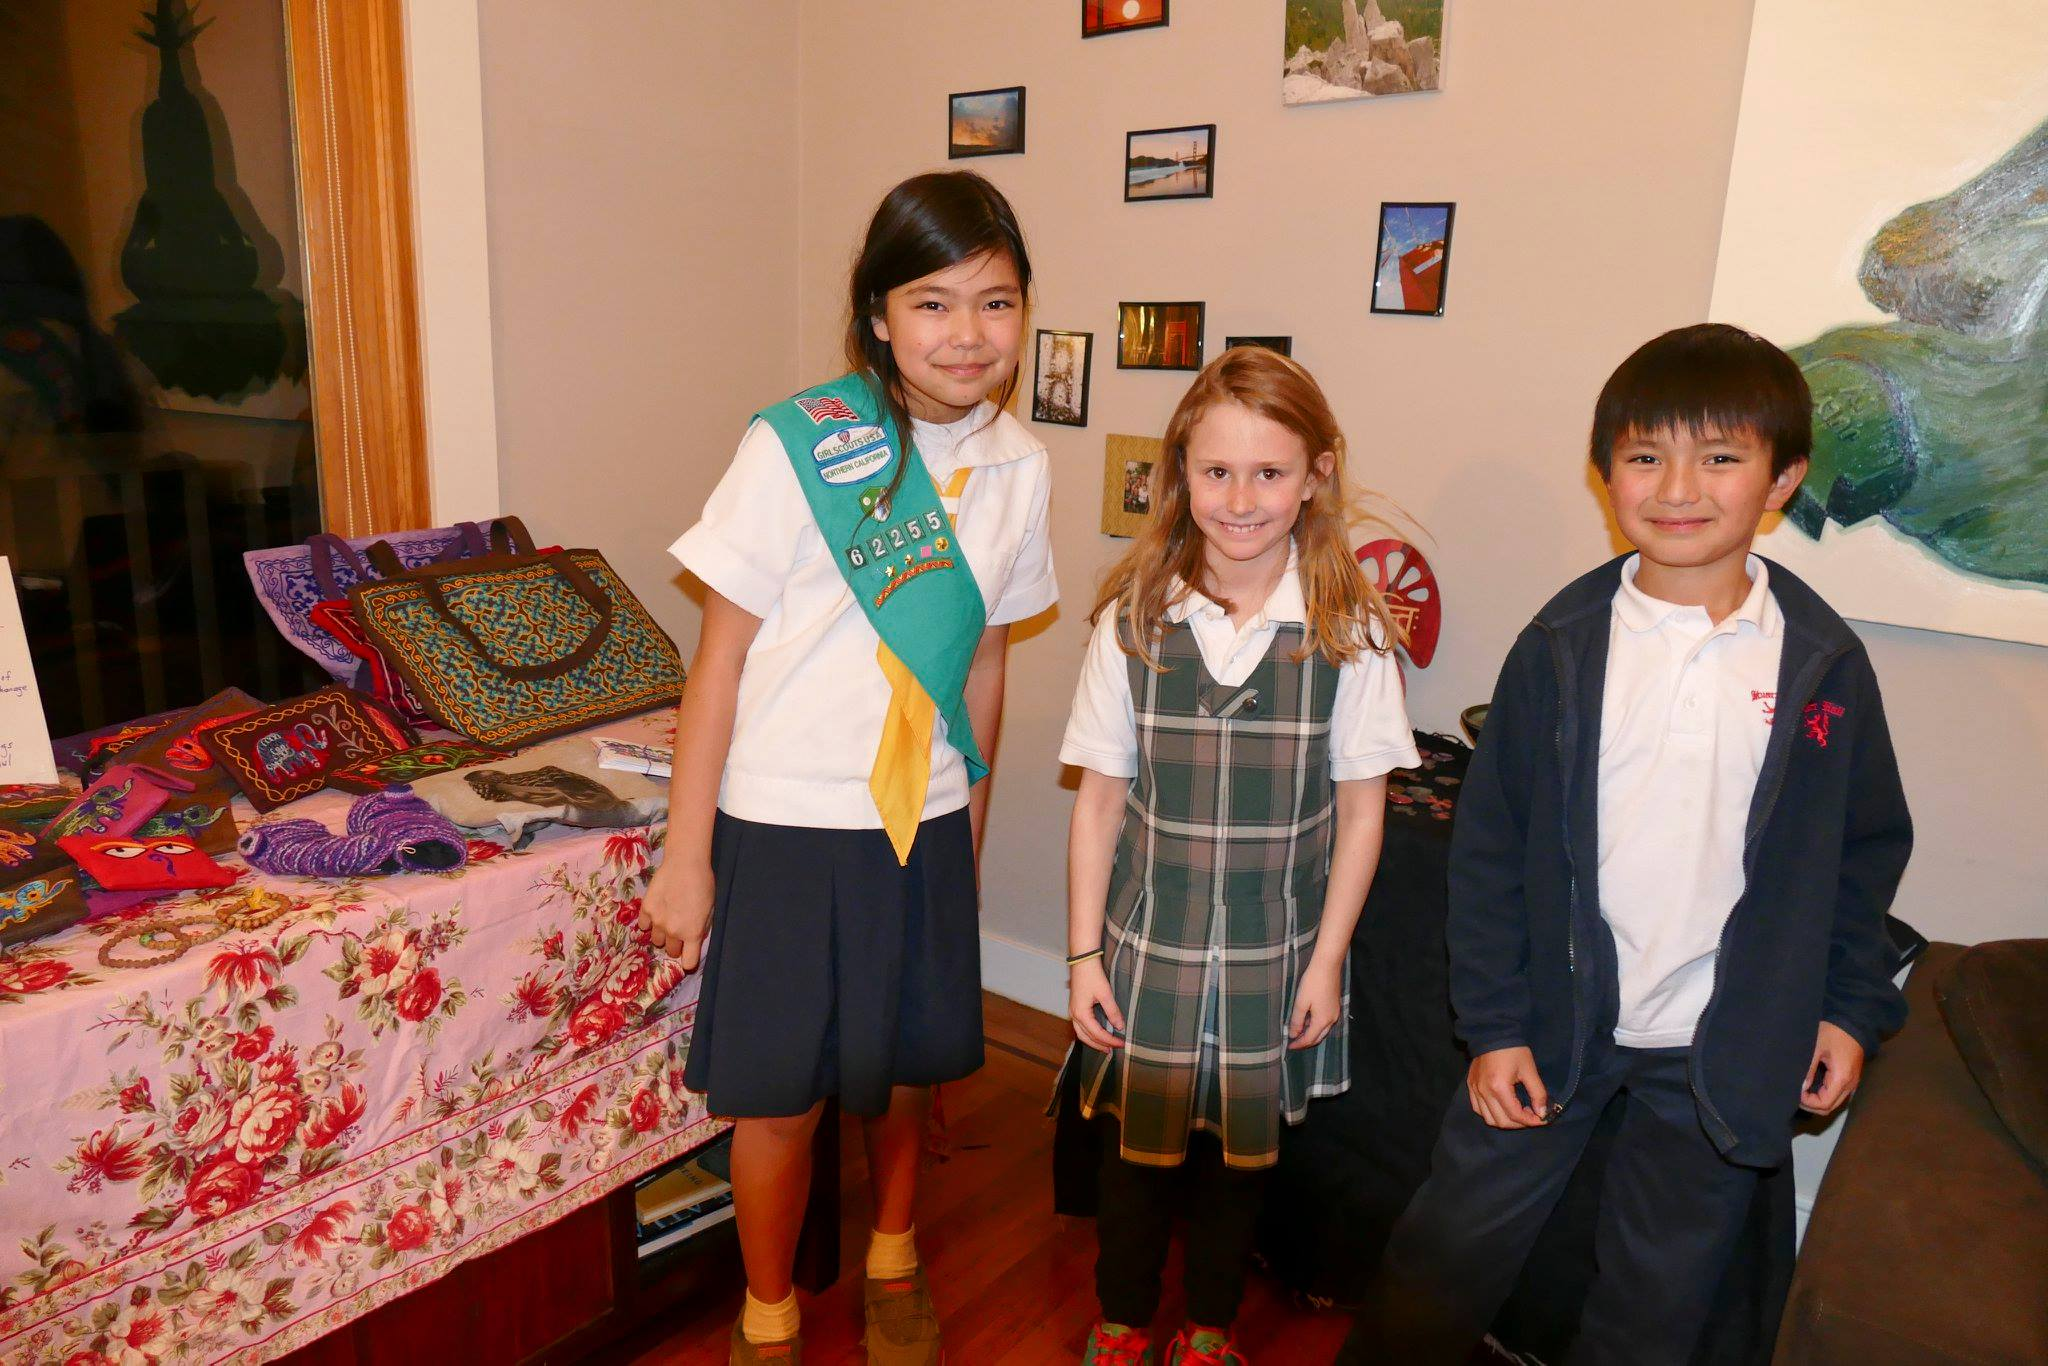 Girlscouts at Eileens 2016.jpg